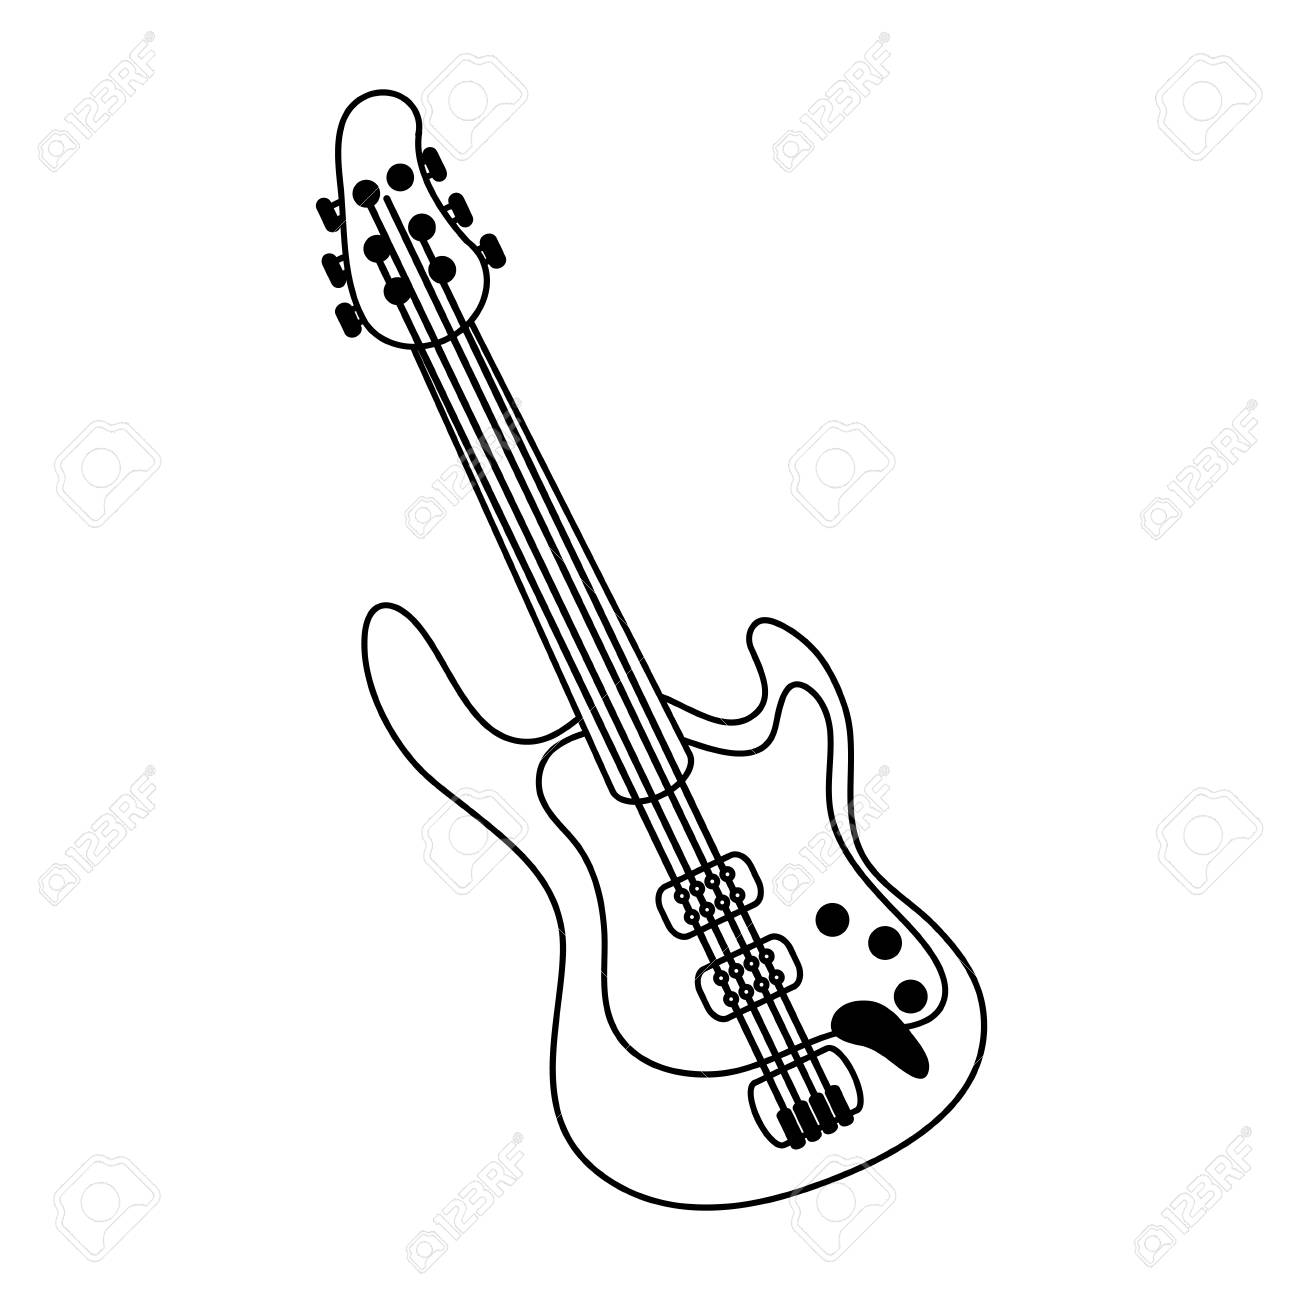 electric guitar icon image vector illustration design royalty free Red Bass Strings electric guitar icon image vector illustration design stock vector 72345696